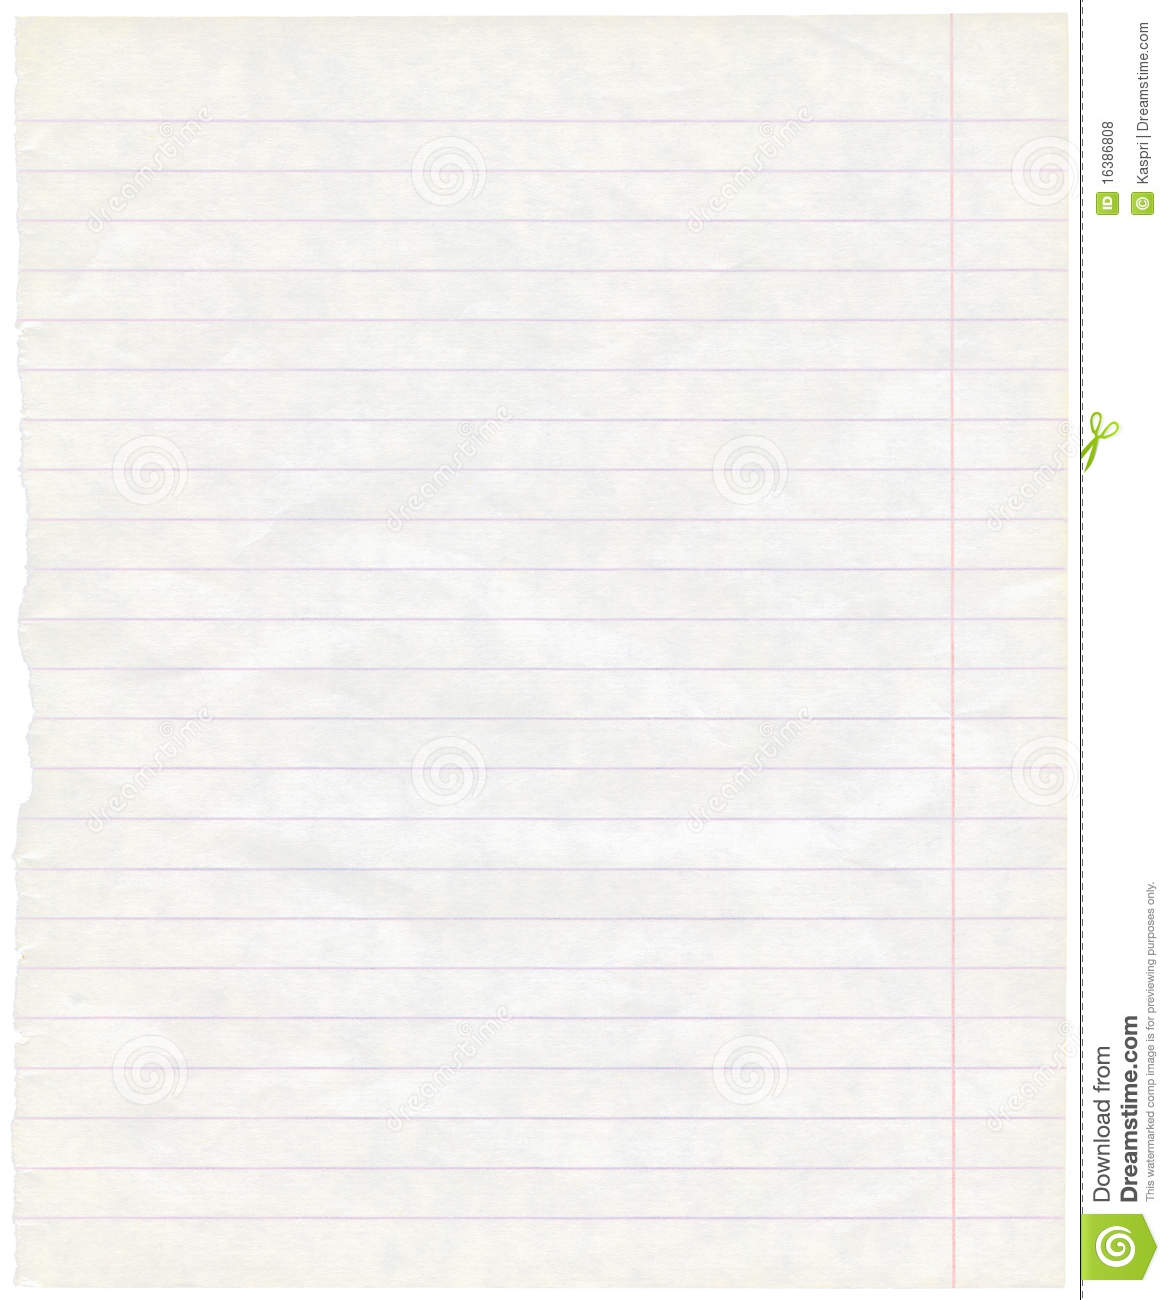 Old Grungy Lined Exercise Note Paper Texture Stock Photo ...